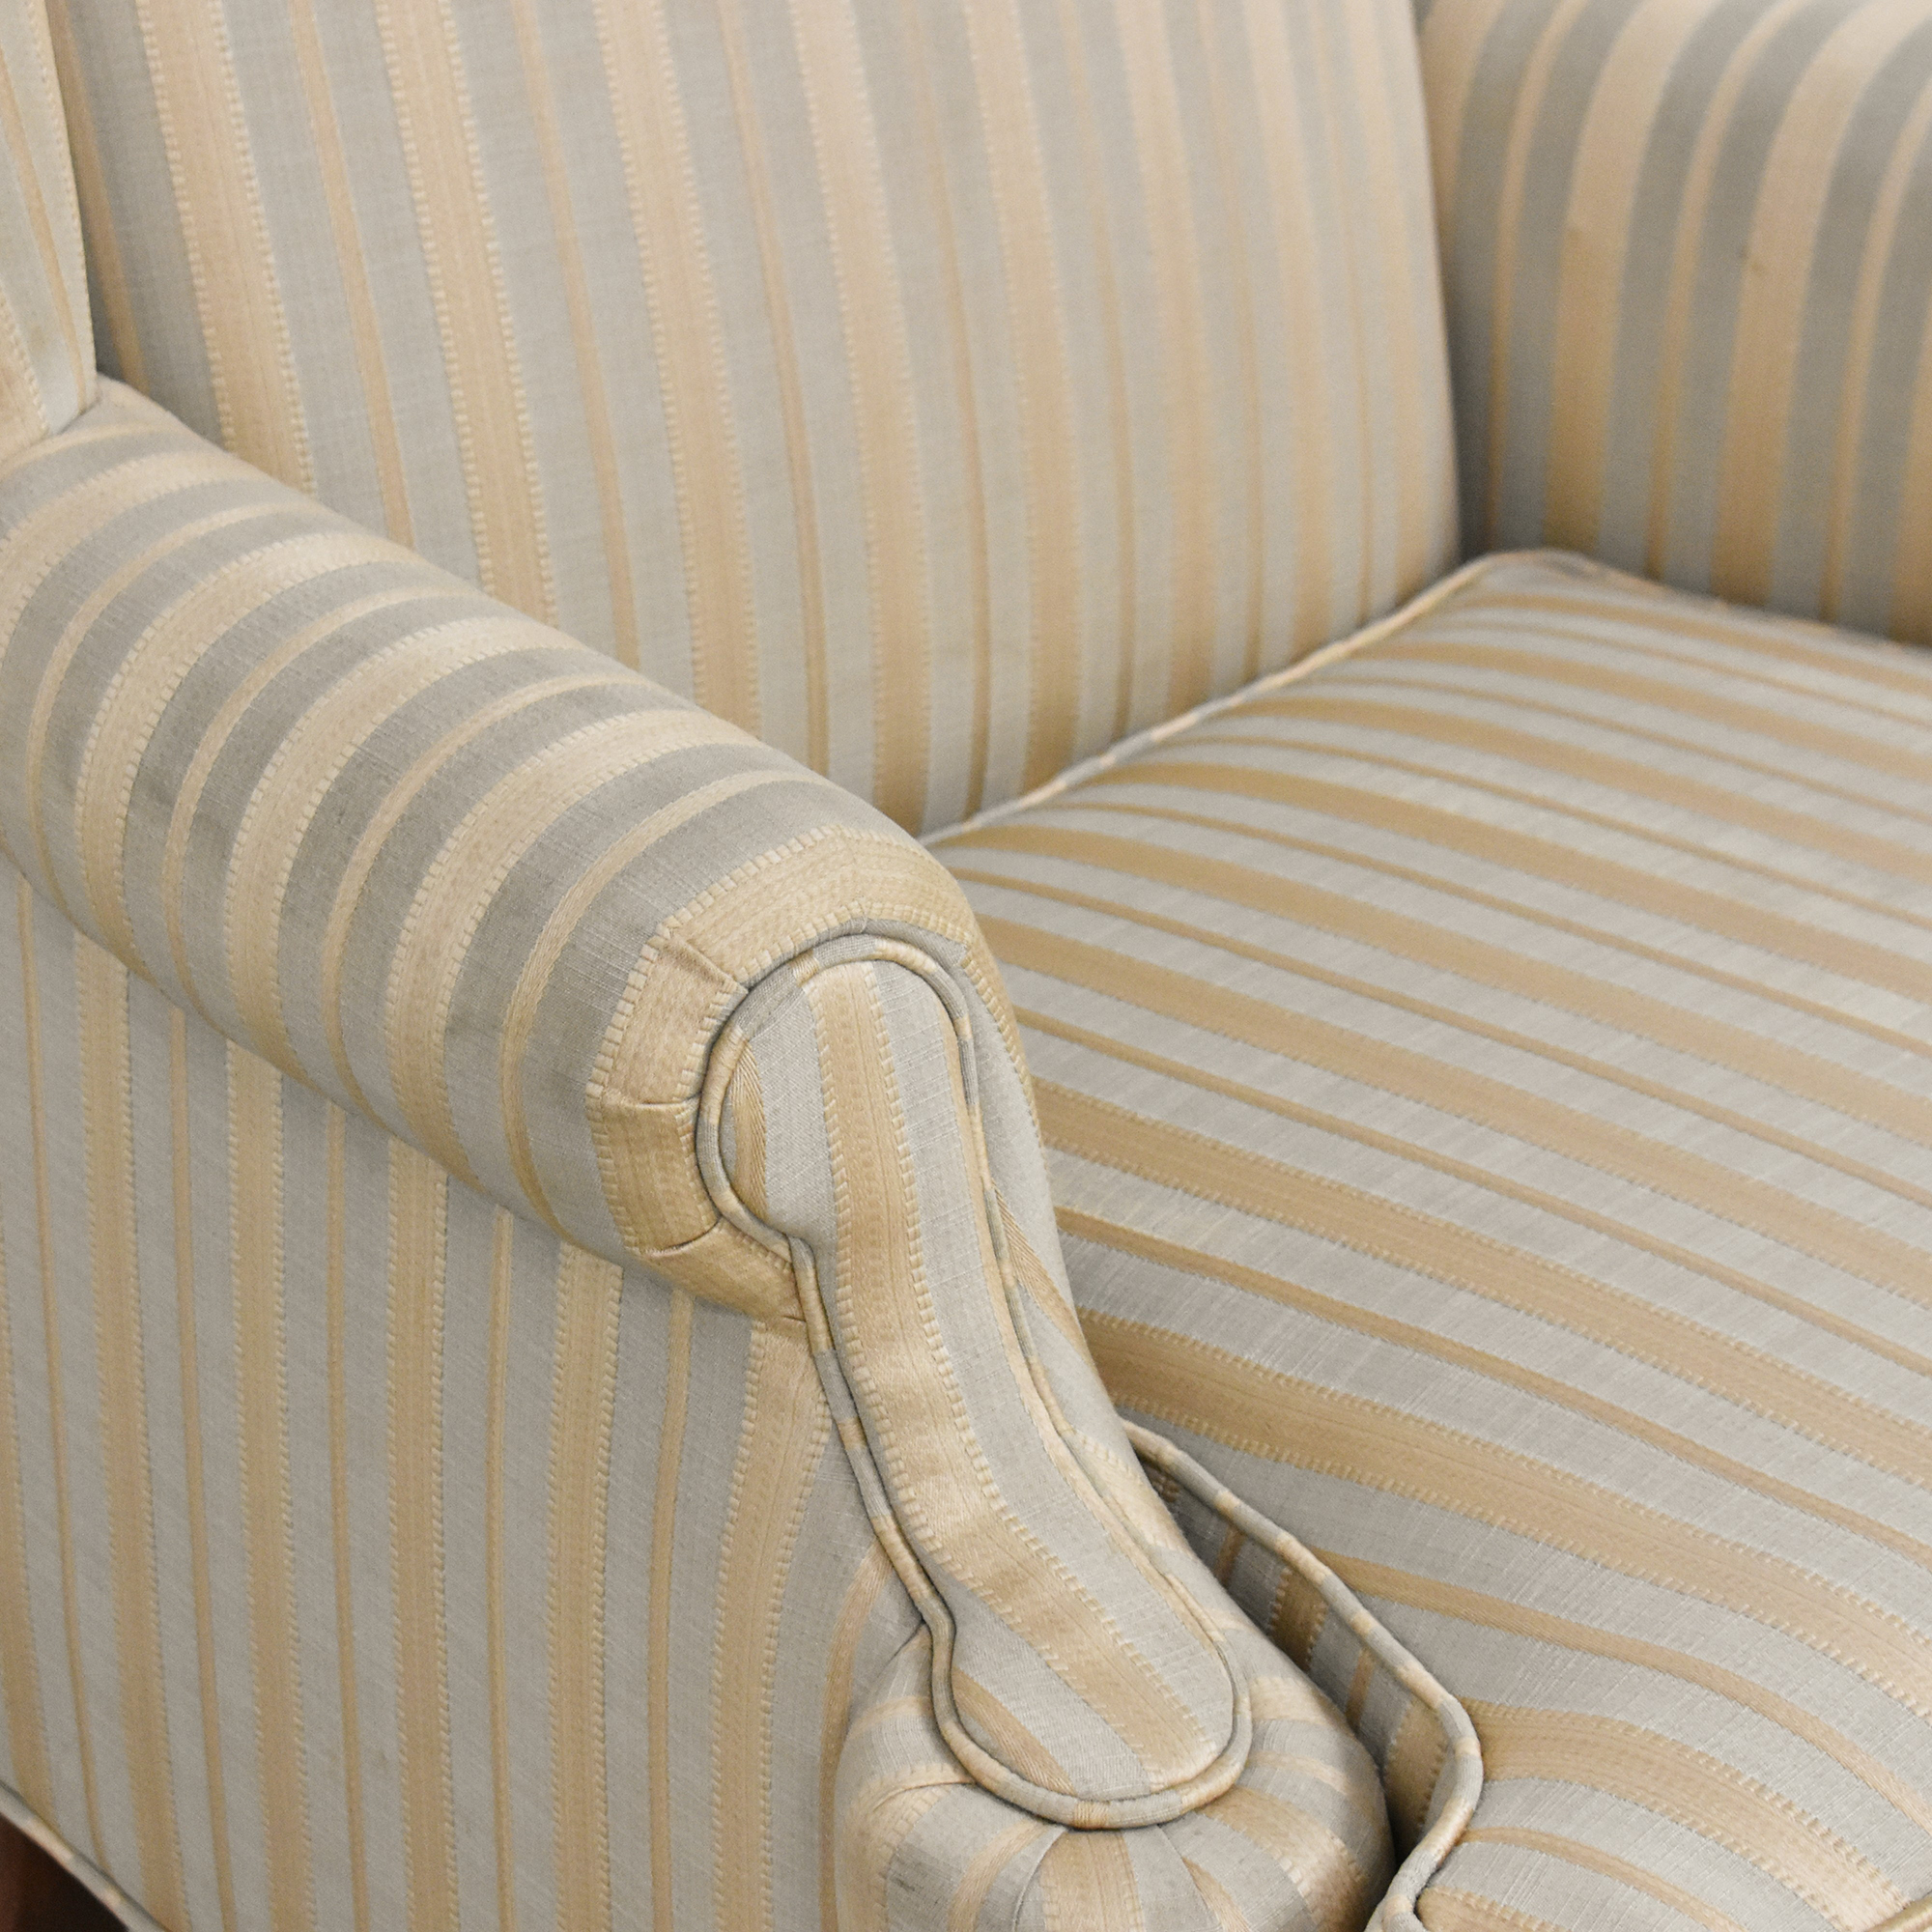 Ethan Allen Ethan Allen Wing Back Chair used